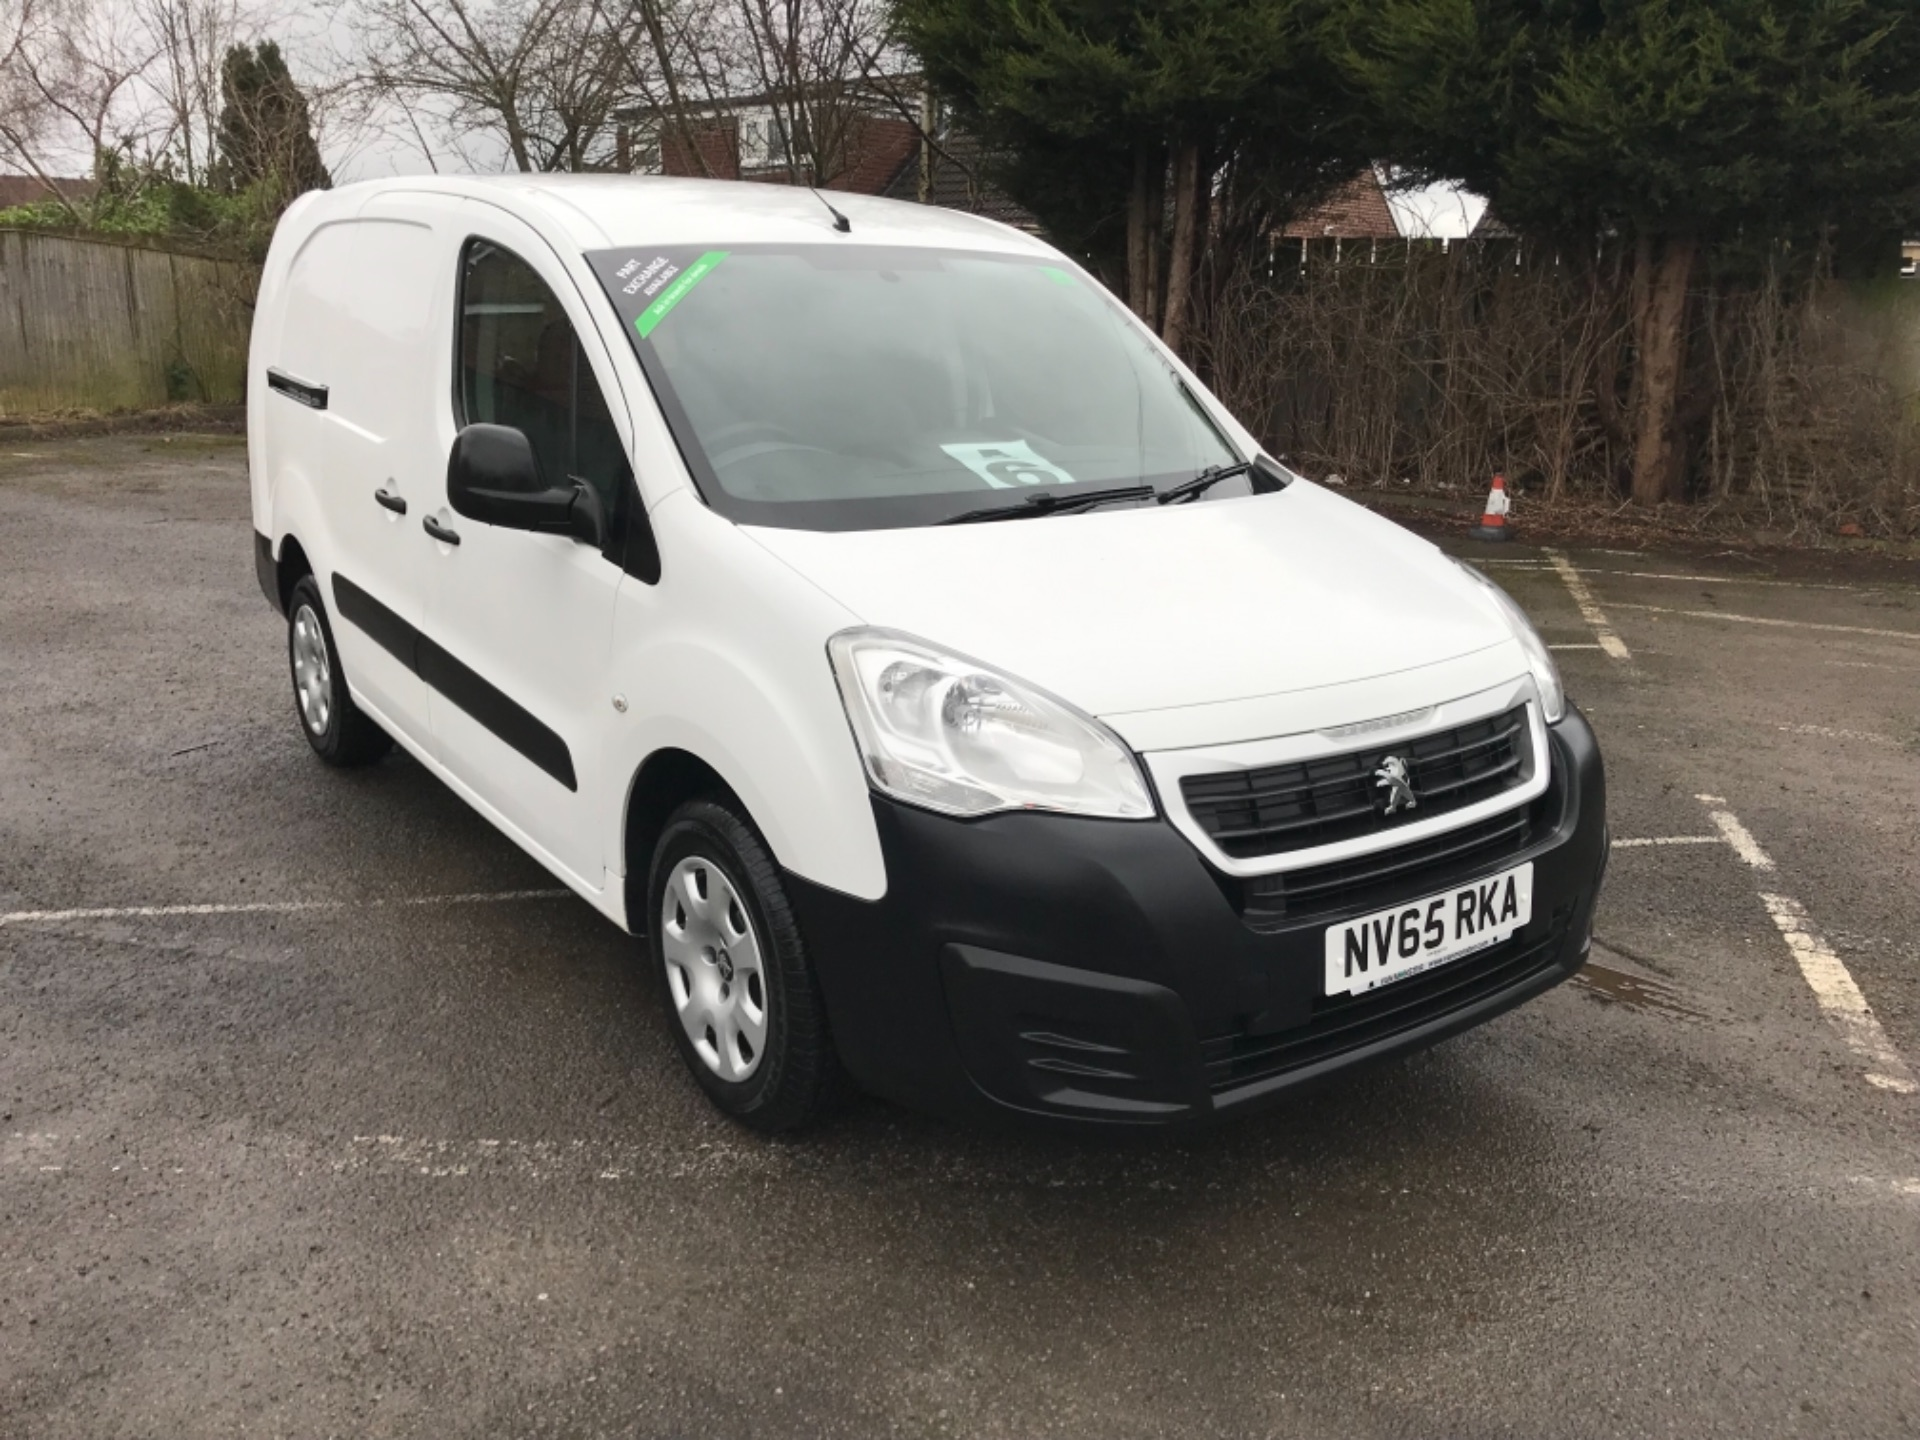 2016 Peugeot Partner 716 S 1.6 Hdi 92 Crew Van EURO 5 (Speed Limited To 56 MPH ) (NV65RKA)